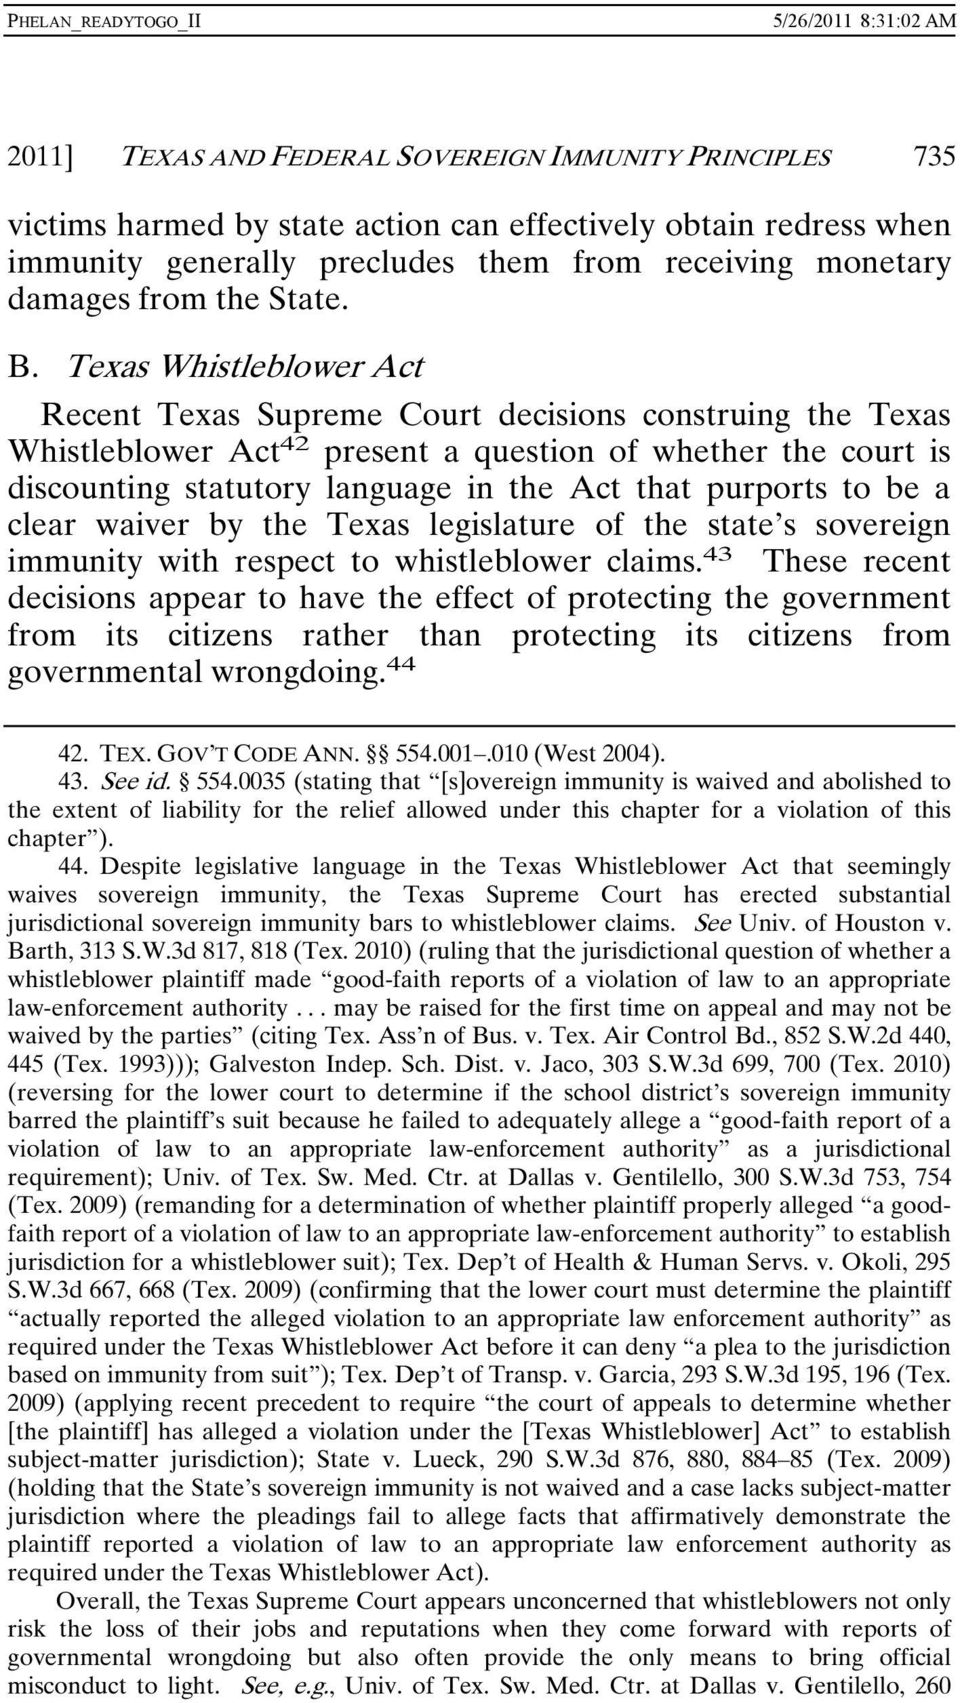 Texas Whistleblower Act Recent Texas Supreme Court decisions construing the Texas Whistleblower Act 42 present a question of whether the court is discounting statutory language in the Act that